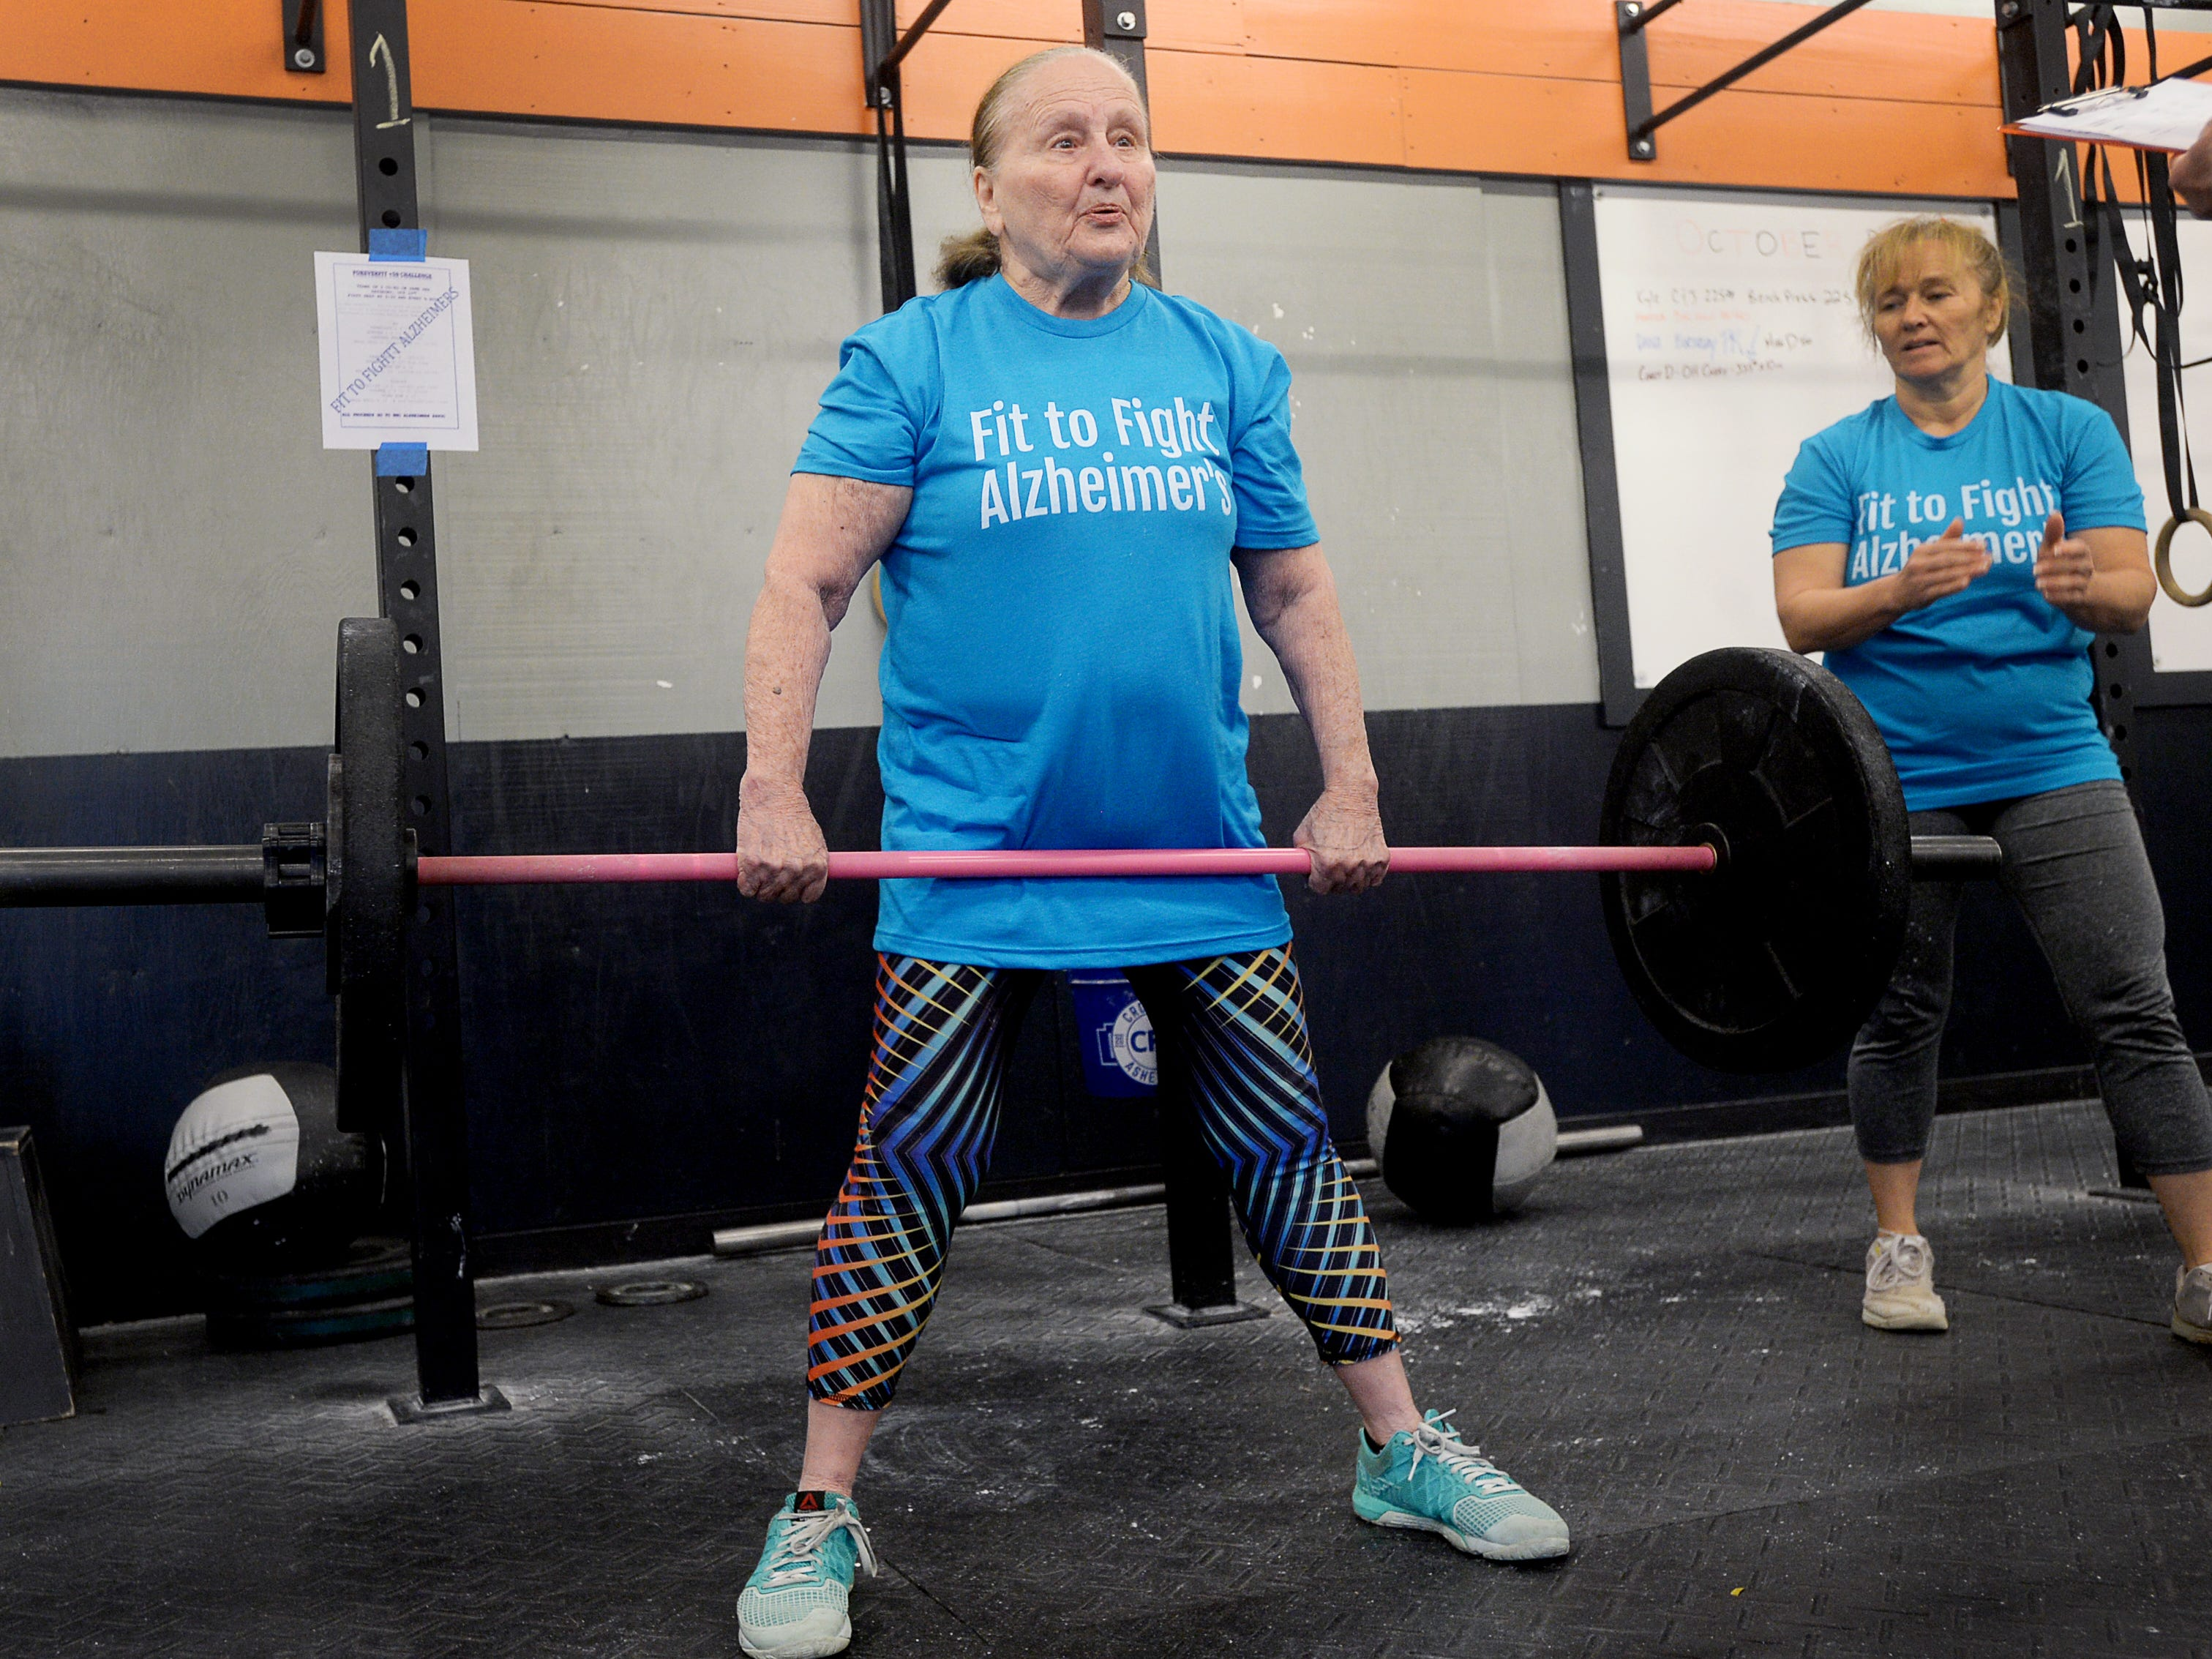 Elaine Fox, 83, does a dead lift as her teammate and daughter, Holly Hollifield, encourages her in the Fit to Fight Alzheimer's challenge at Crossfit Asheville October, 20, 2018. The challenge was open to people 50 and up and raised $2,000 for WNC Alzheimer's Association.